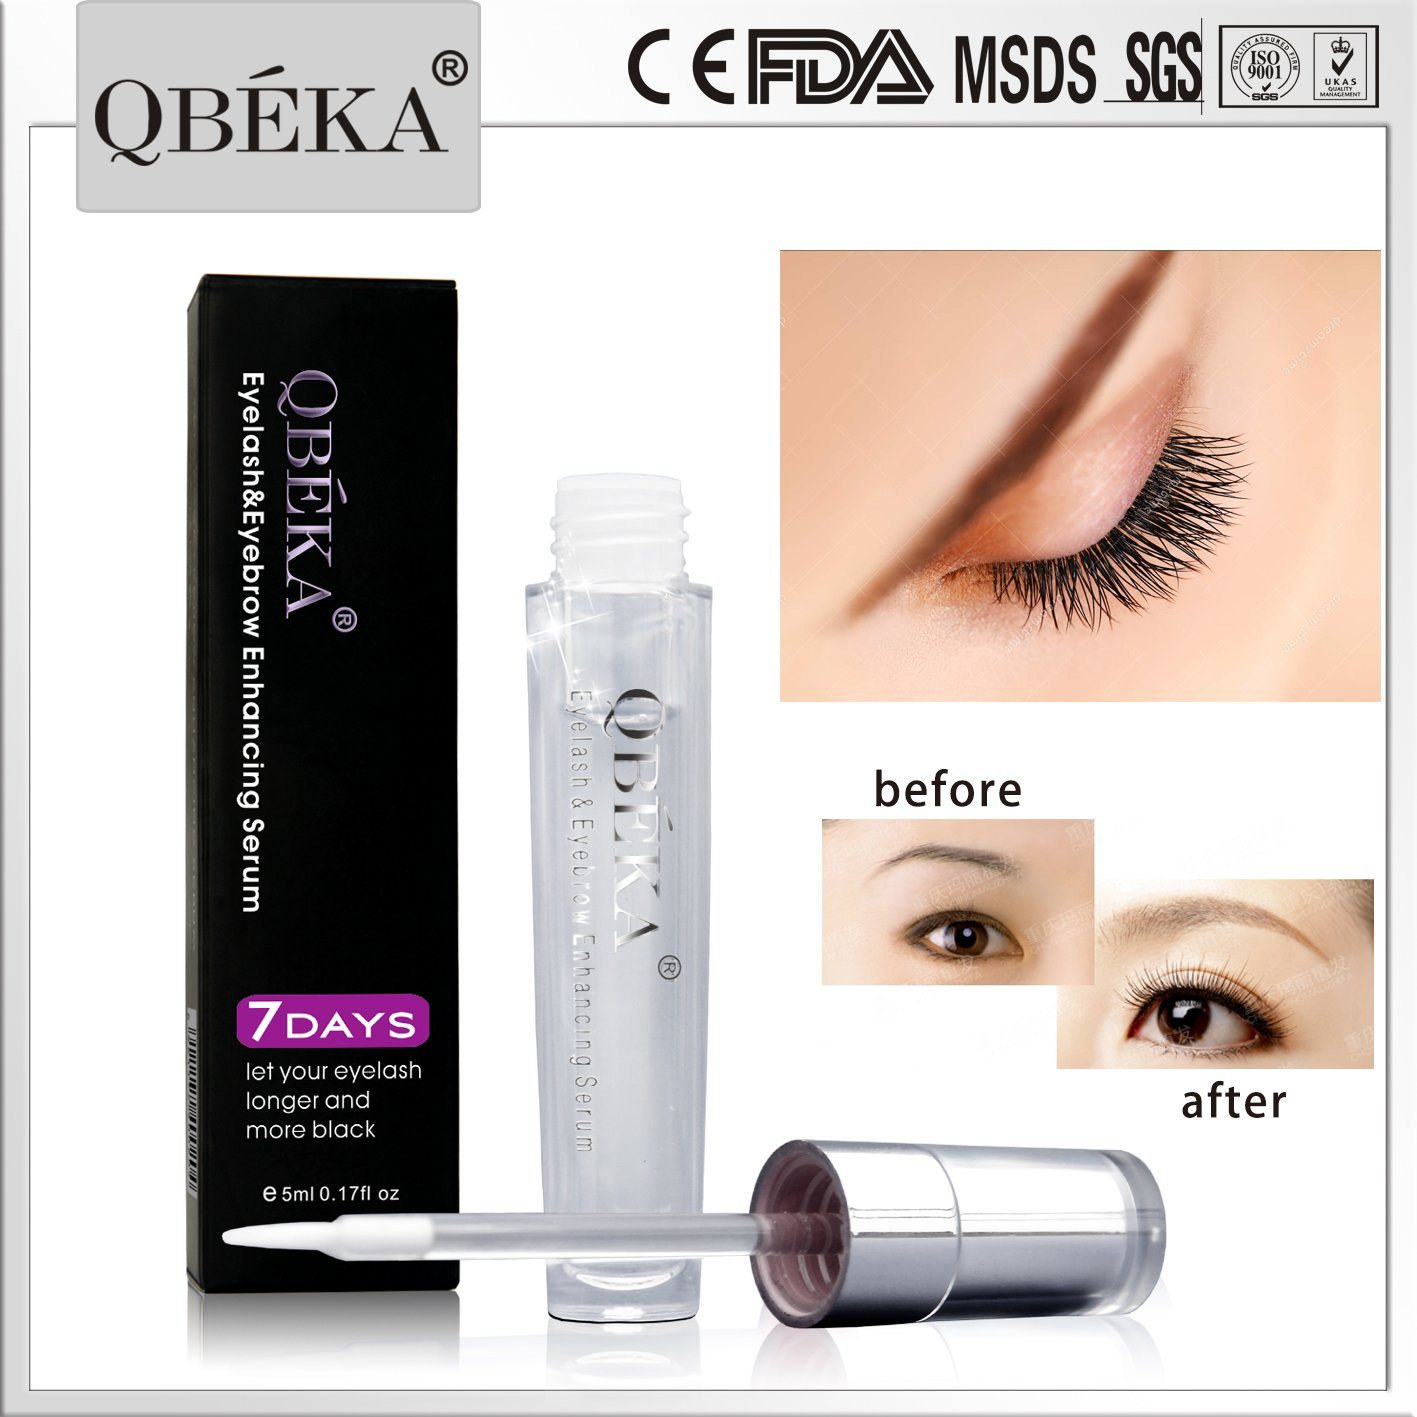 c1f9976e4cc China Cosmetic QBEKA Eyelash Eyebrow Enhancing Serum for Eyelash ...